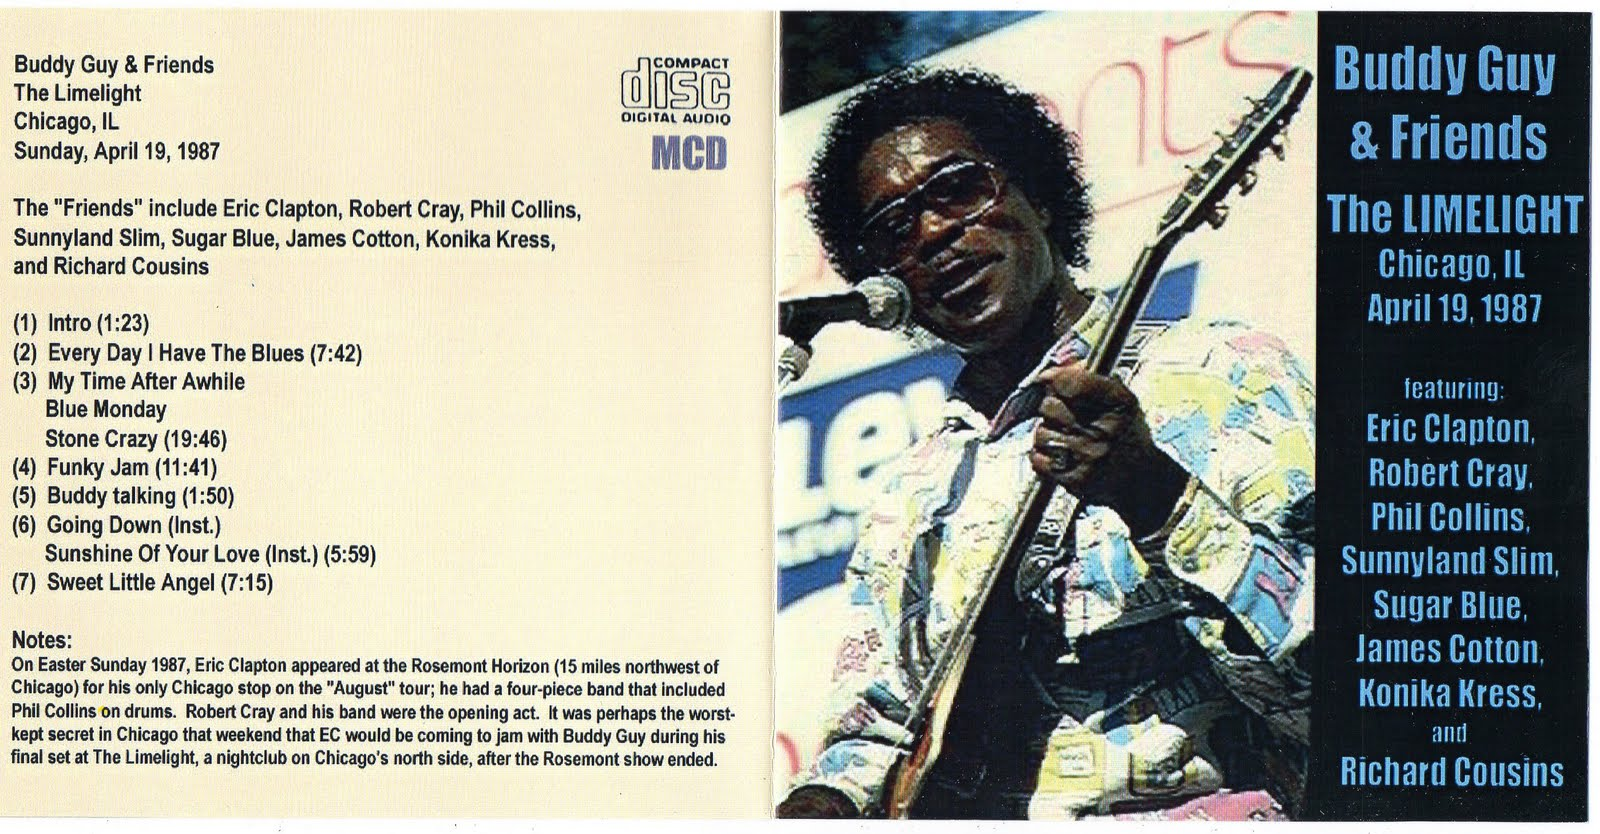 CastelarBlues: CD - Buddy Guy & Friends - The Limelight ...